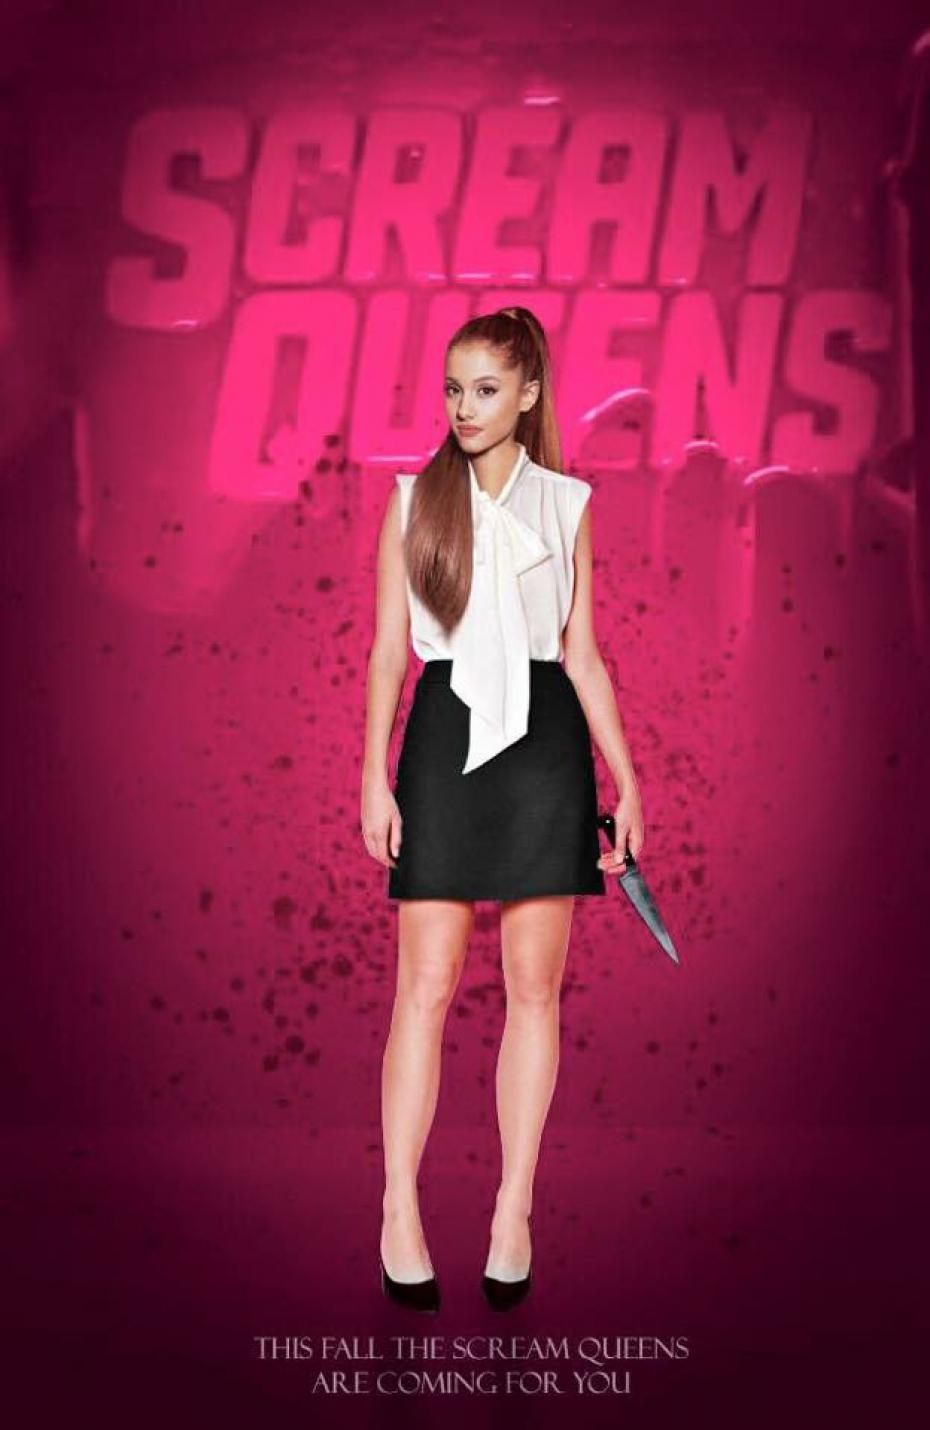 ariana grande scream queens poster ariana grande pinterest queen poster scream queens. Black Bedroom Furniture Sets. Home Design Ideas